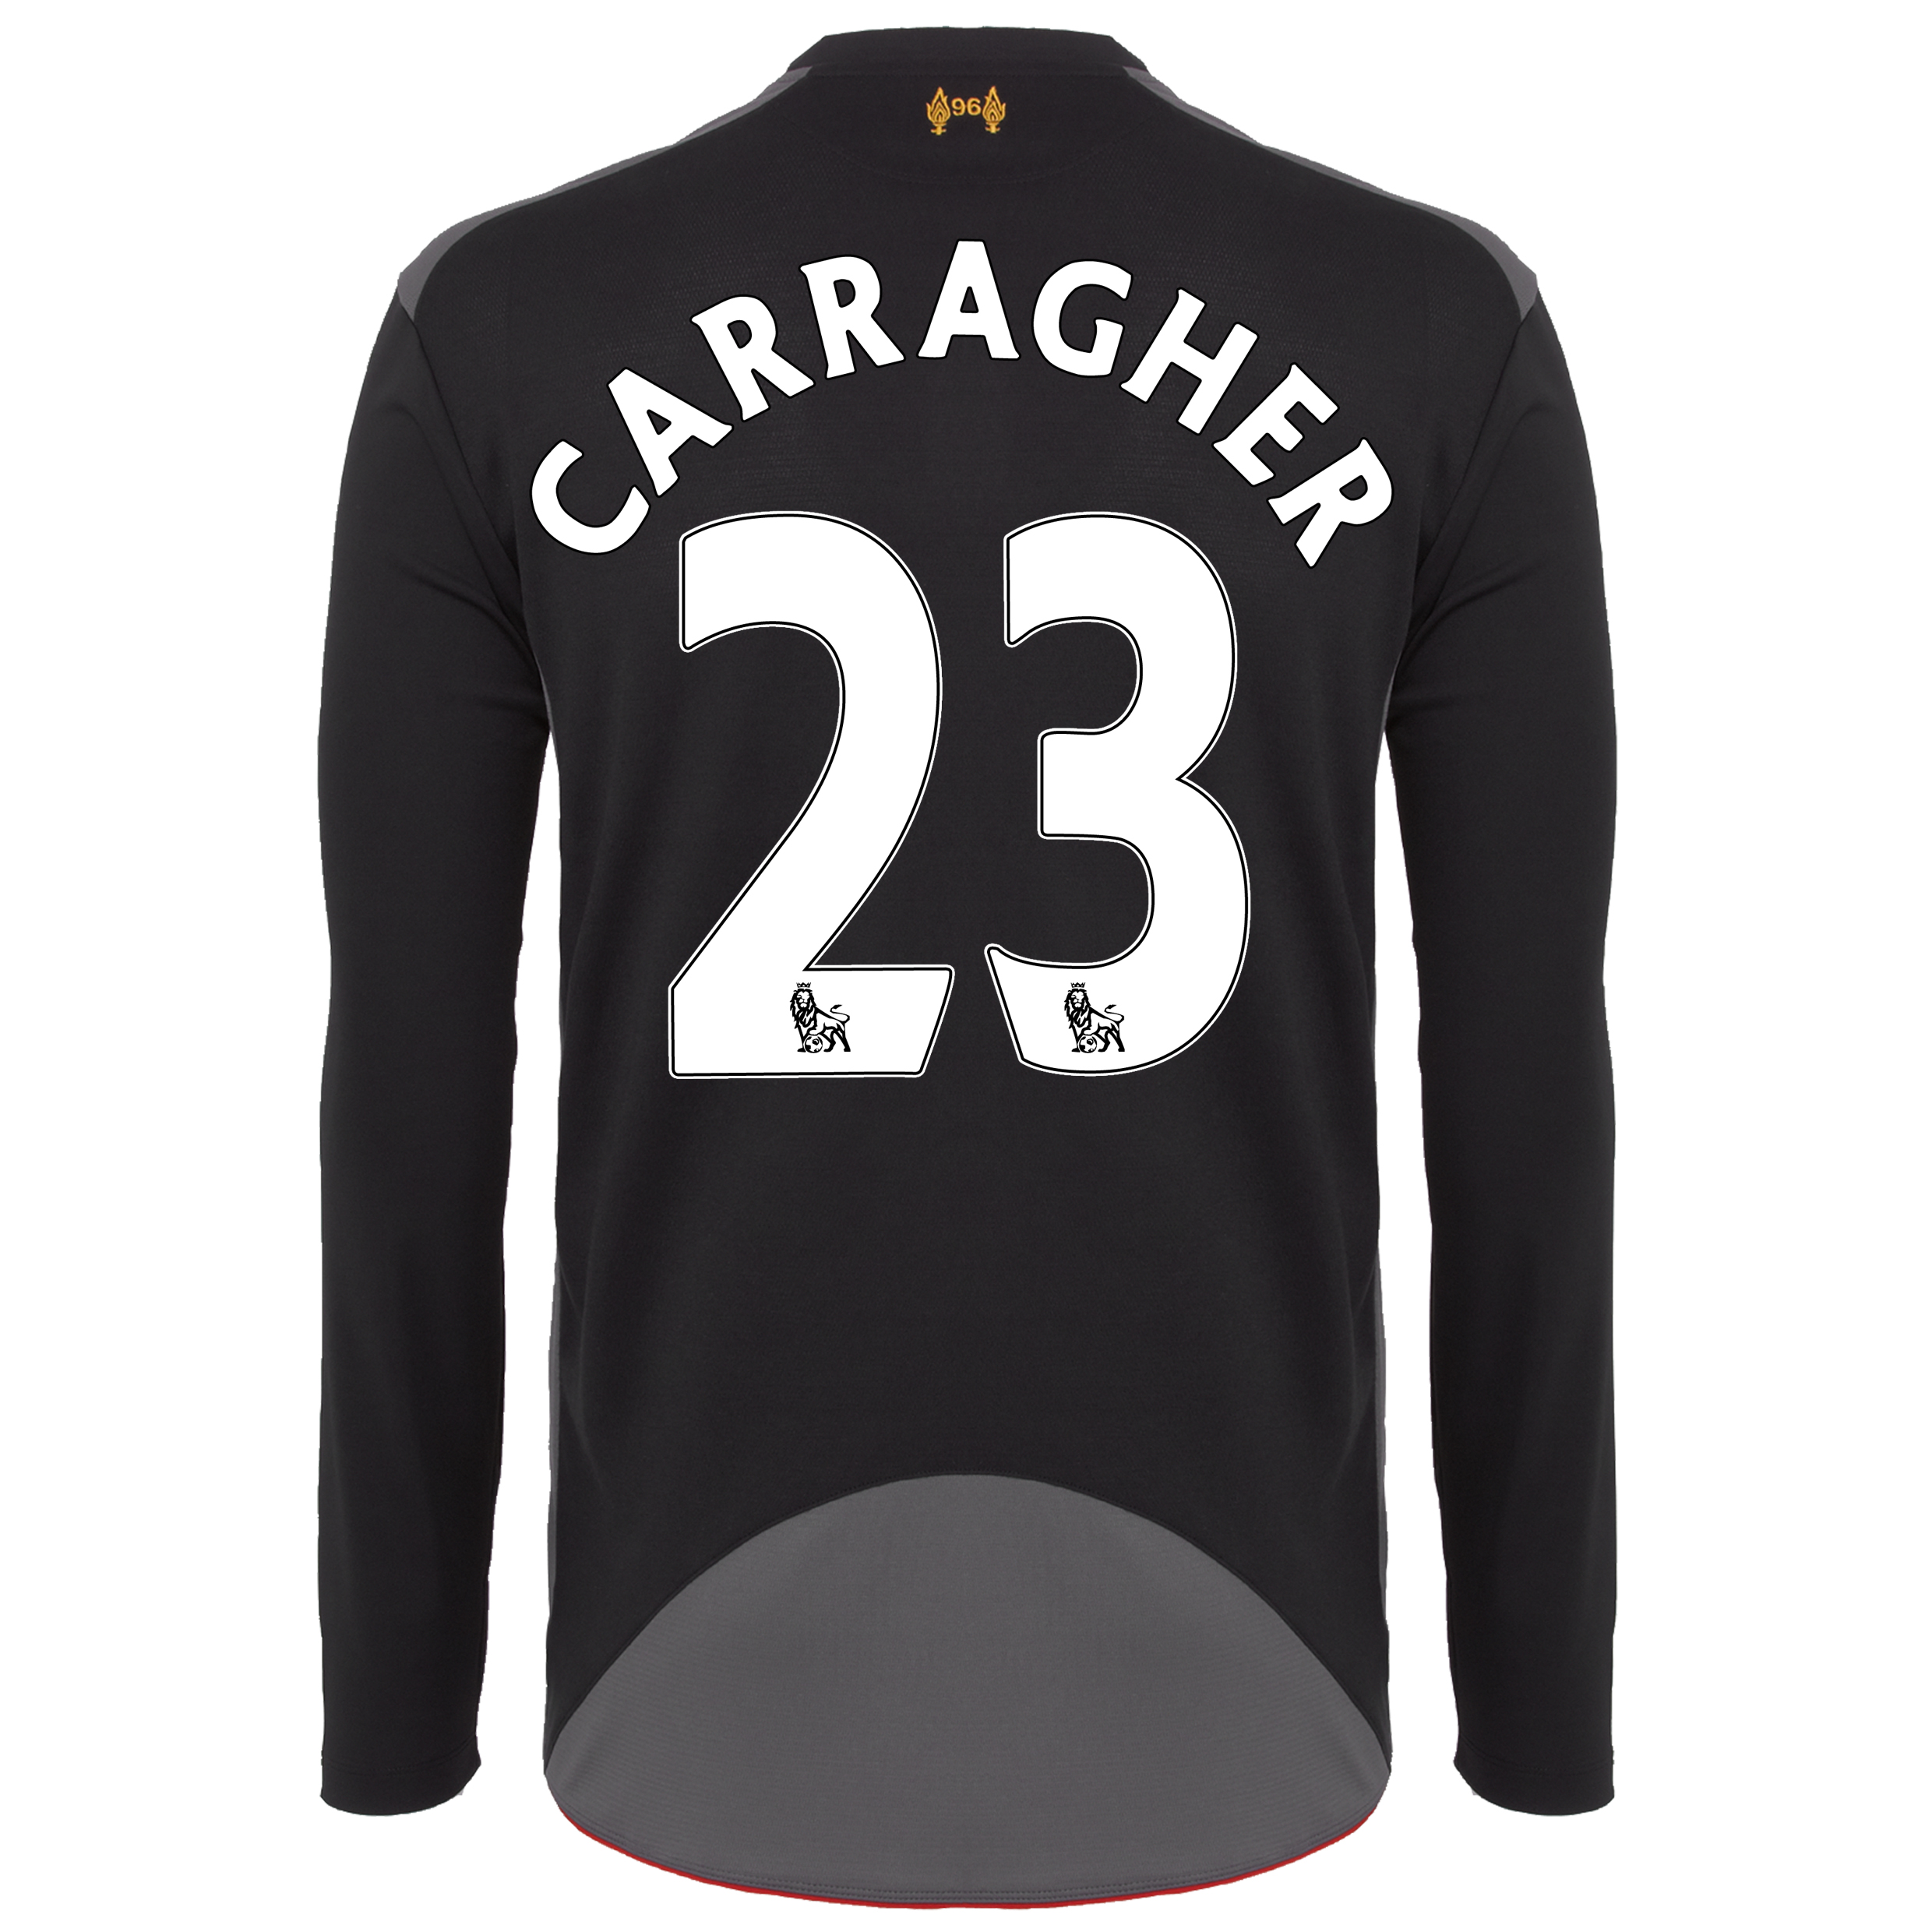 Liverpool Away Shirt 2012/13 - Long Sleeve - Youths with Carragher 23 printing